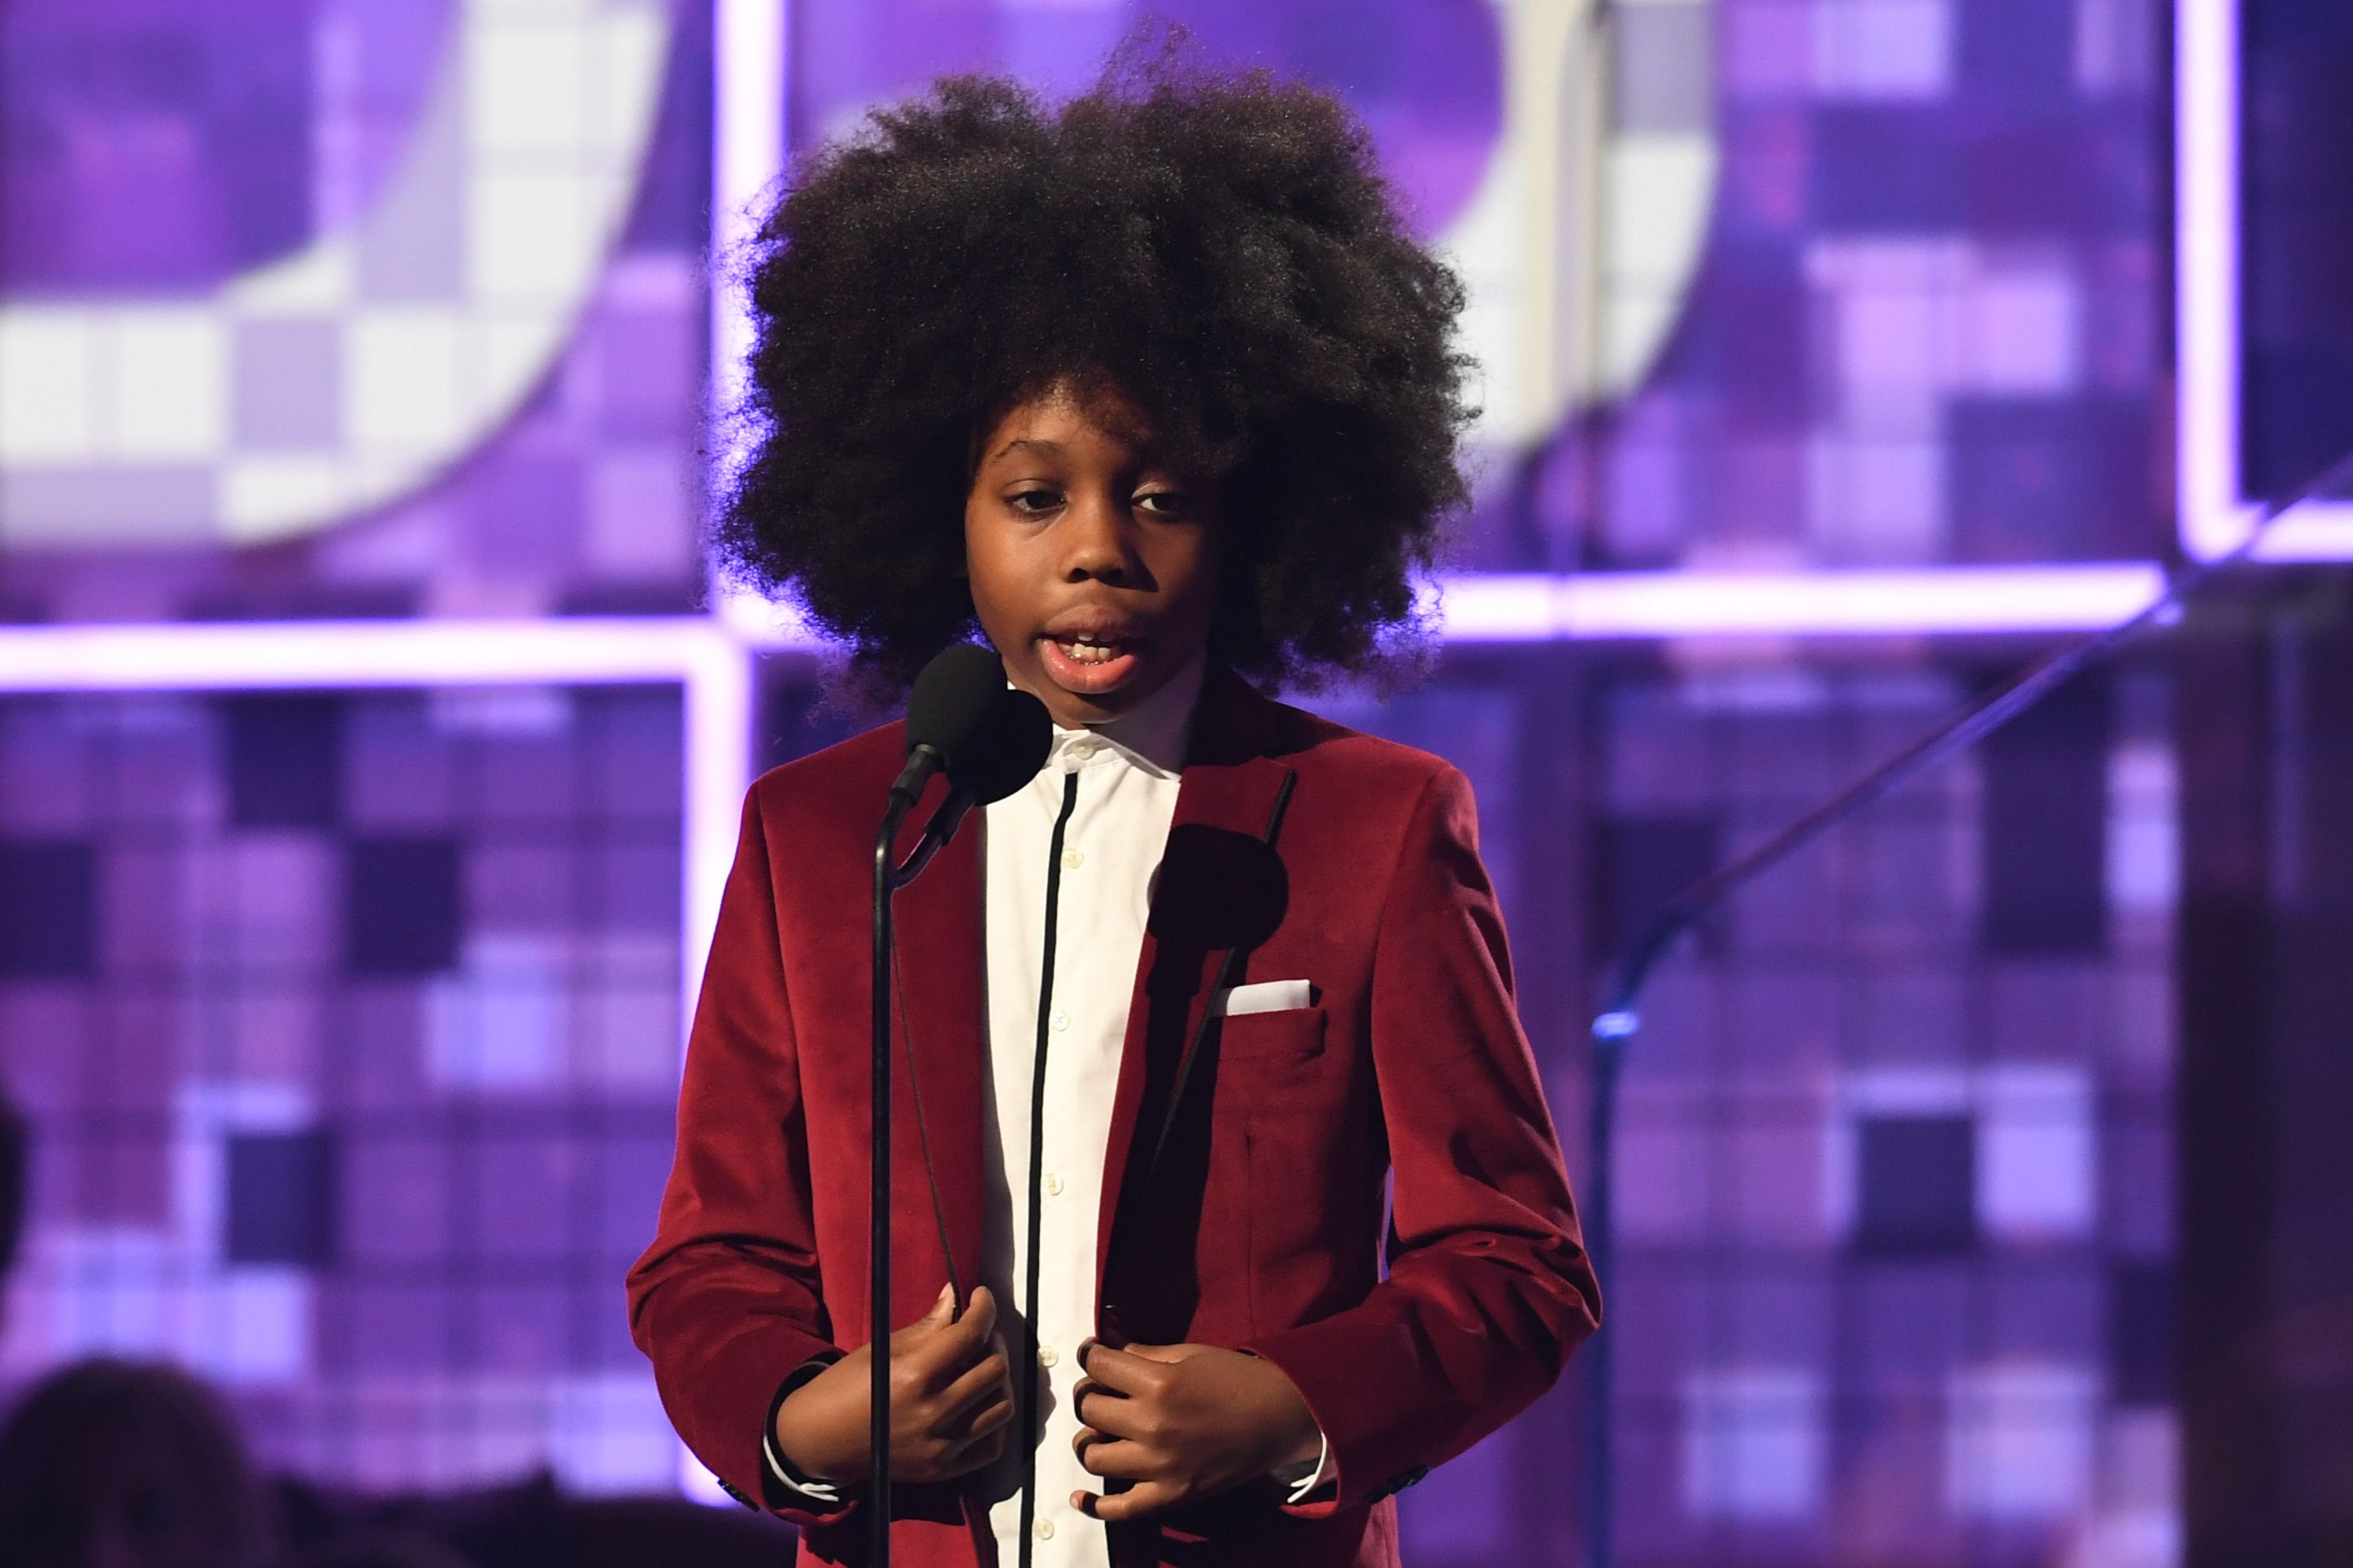 Grammys 2019: Diana Ross' grandson has the Internet saying he 'stole the show'